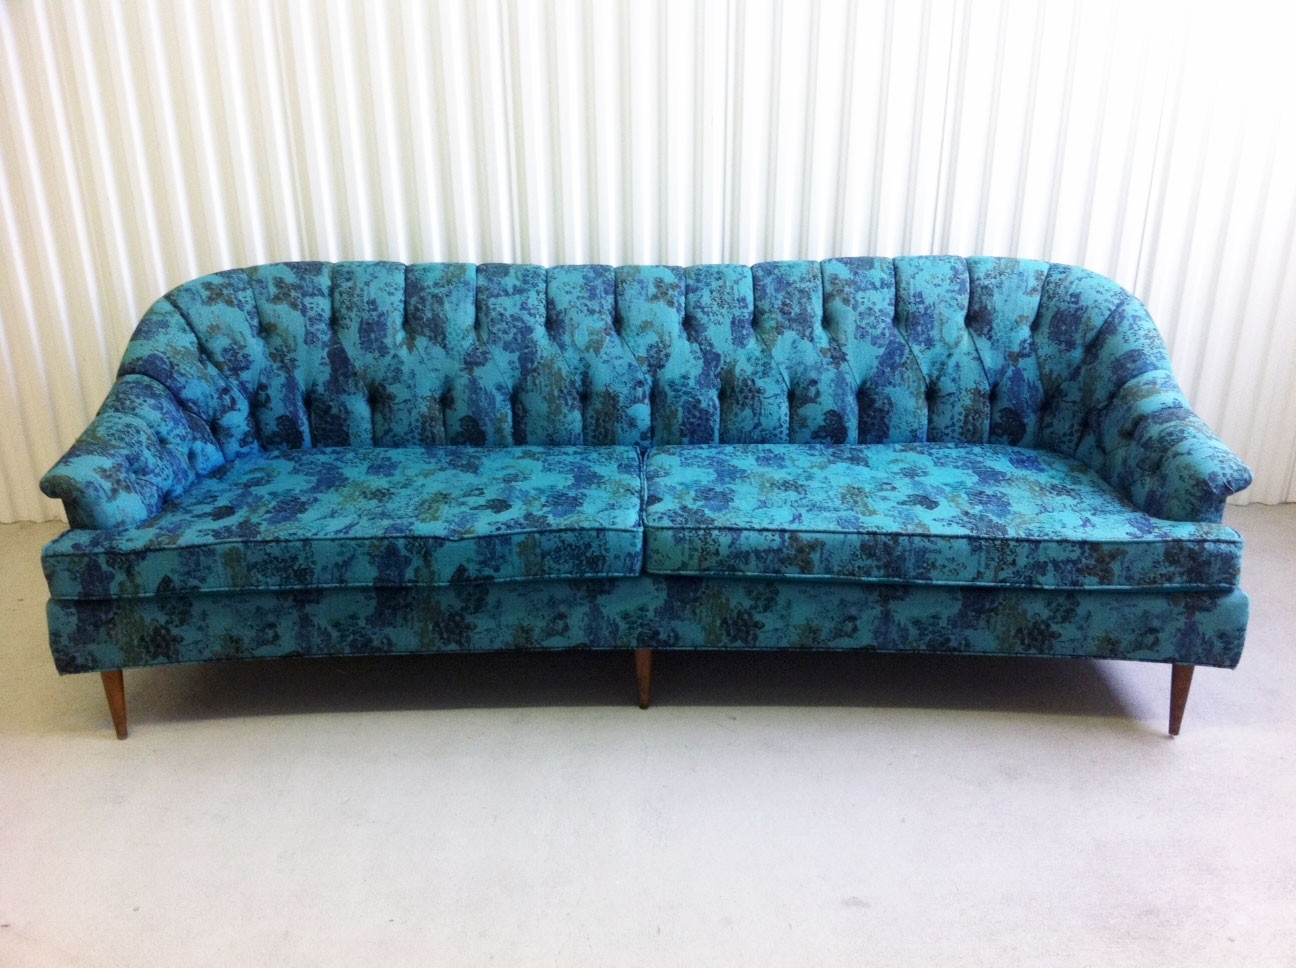 Vintage Sofa Turwoise April 13 Tricks Sleeper Reproductions With Regard To Retro Sofas For Sale (Image 15 of 15)